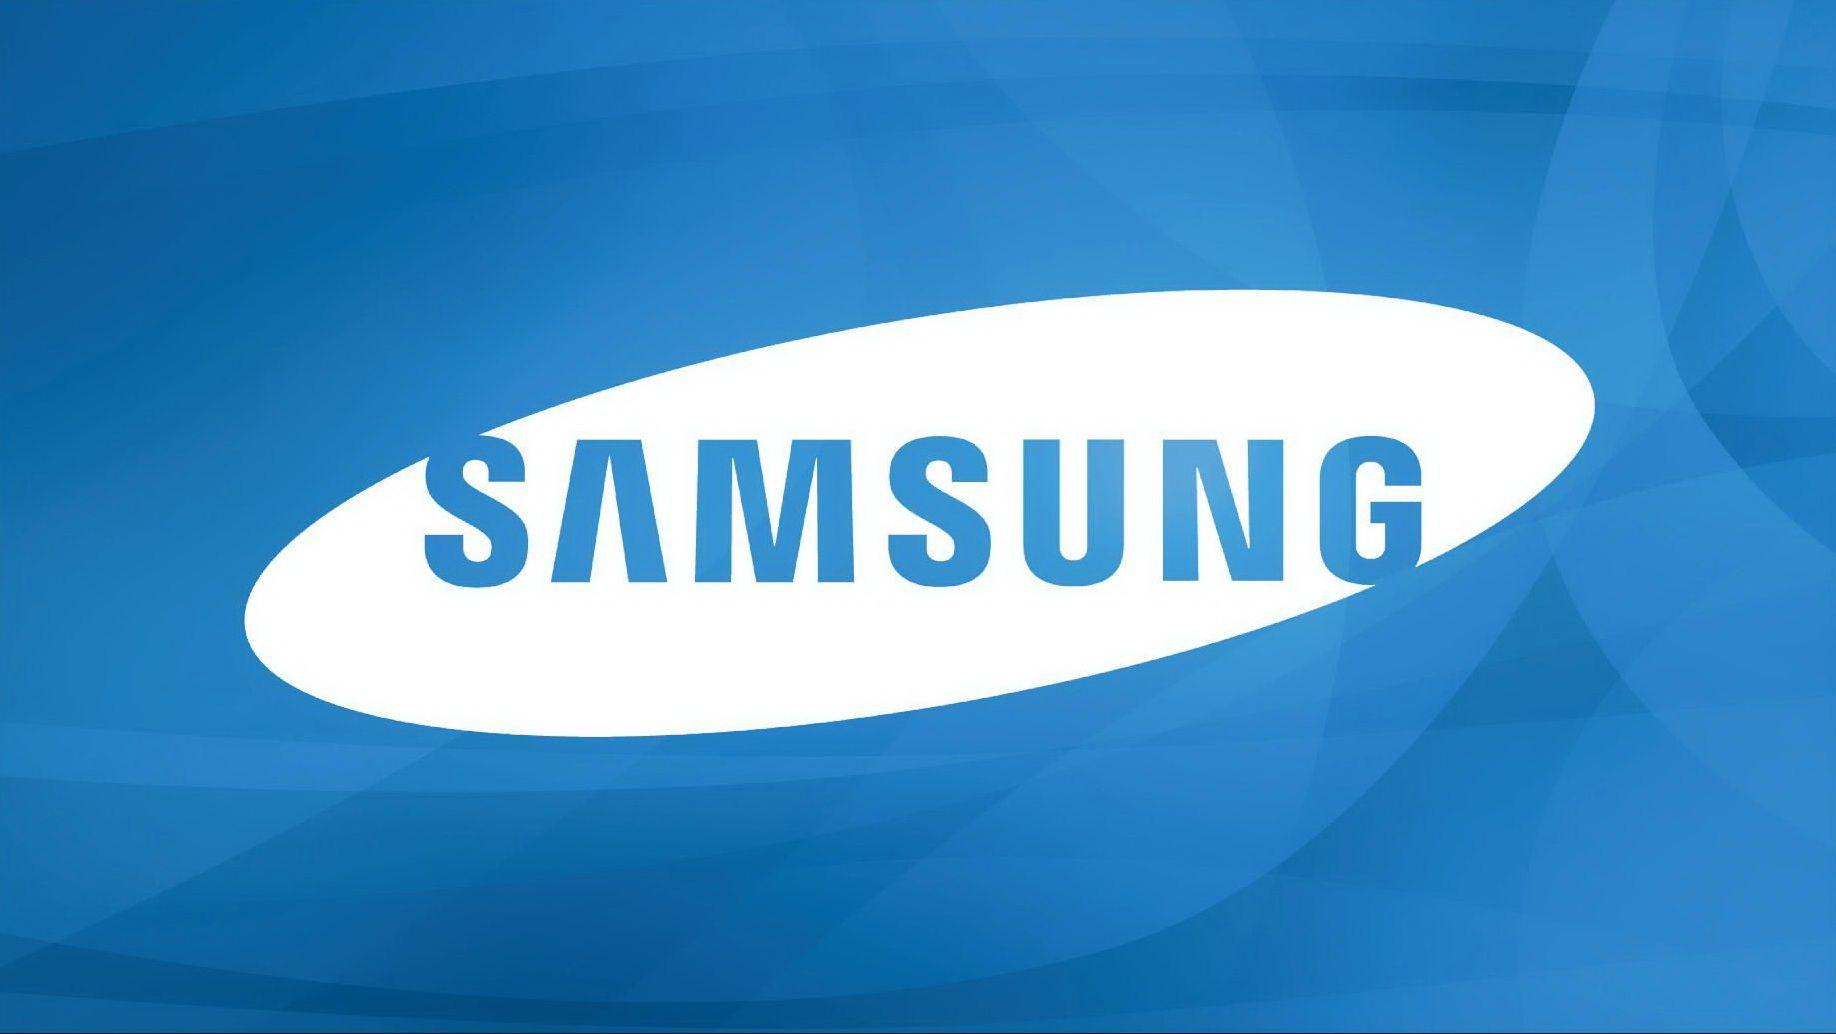 Samsung HD Wallpapers | Samsung Galaxy Images | Cool Wallpapers